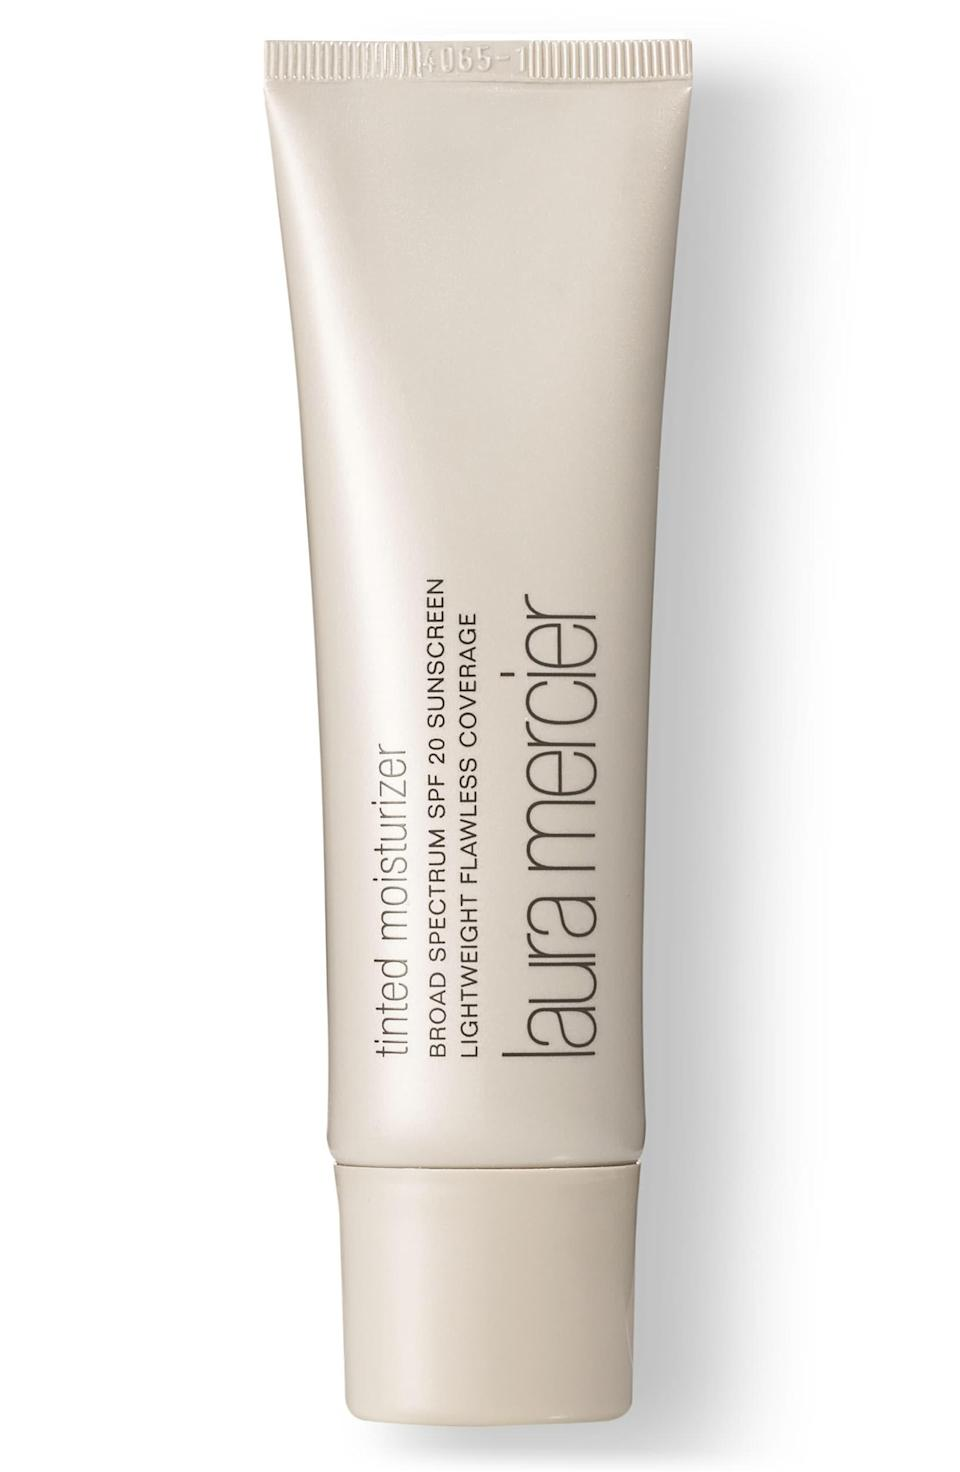 """<h3><strong>Laura Mercier Tinted Moisturizer SPF 20</strong></h3> <br>You know this beige tube as everyone's favorite no-makeup makeup, for good reason: It glides on evenly over any serum or cream (finger-blending recommended) for the thinnest veil of a tint that's light, radiant, and protective. <br><br><strong>Laura Mercier</strong> Tinted Moisturizer, $, available at <a href=""""https://go.skimresources.com/?id=30283X879131&url=https%3A%2F%2Fwww.lauramercier.com%2Ftinted-moisturizer-prod210061.html"""" rel=""""nofollow noopener"""" target=""""_blank"""" data-ylk=""""slk:Laura Mercier"""" class=""""link rapid-noclick-resp"""">Laura Mercier</a><br>"""